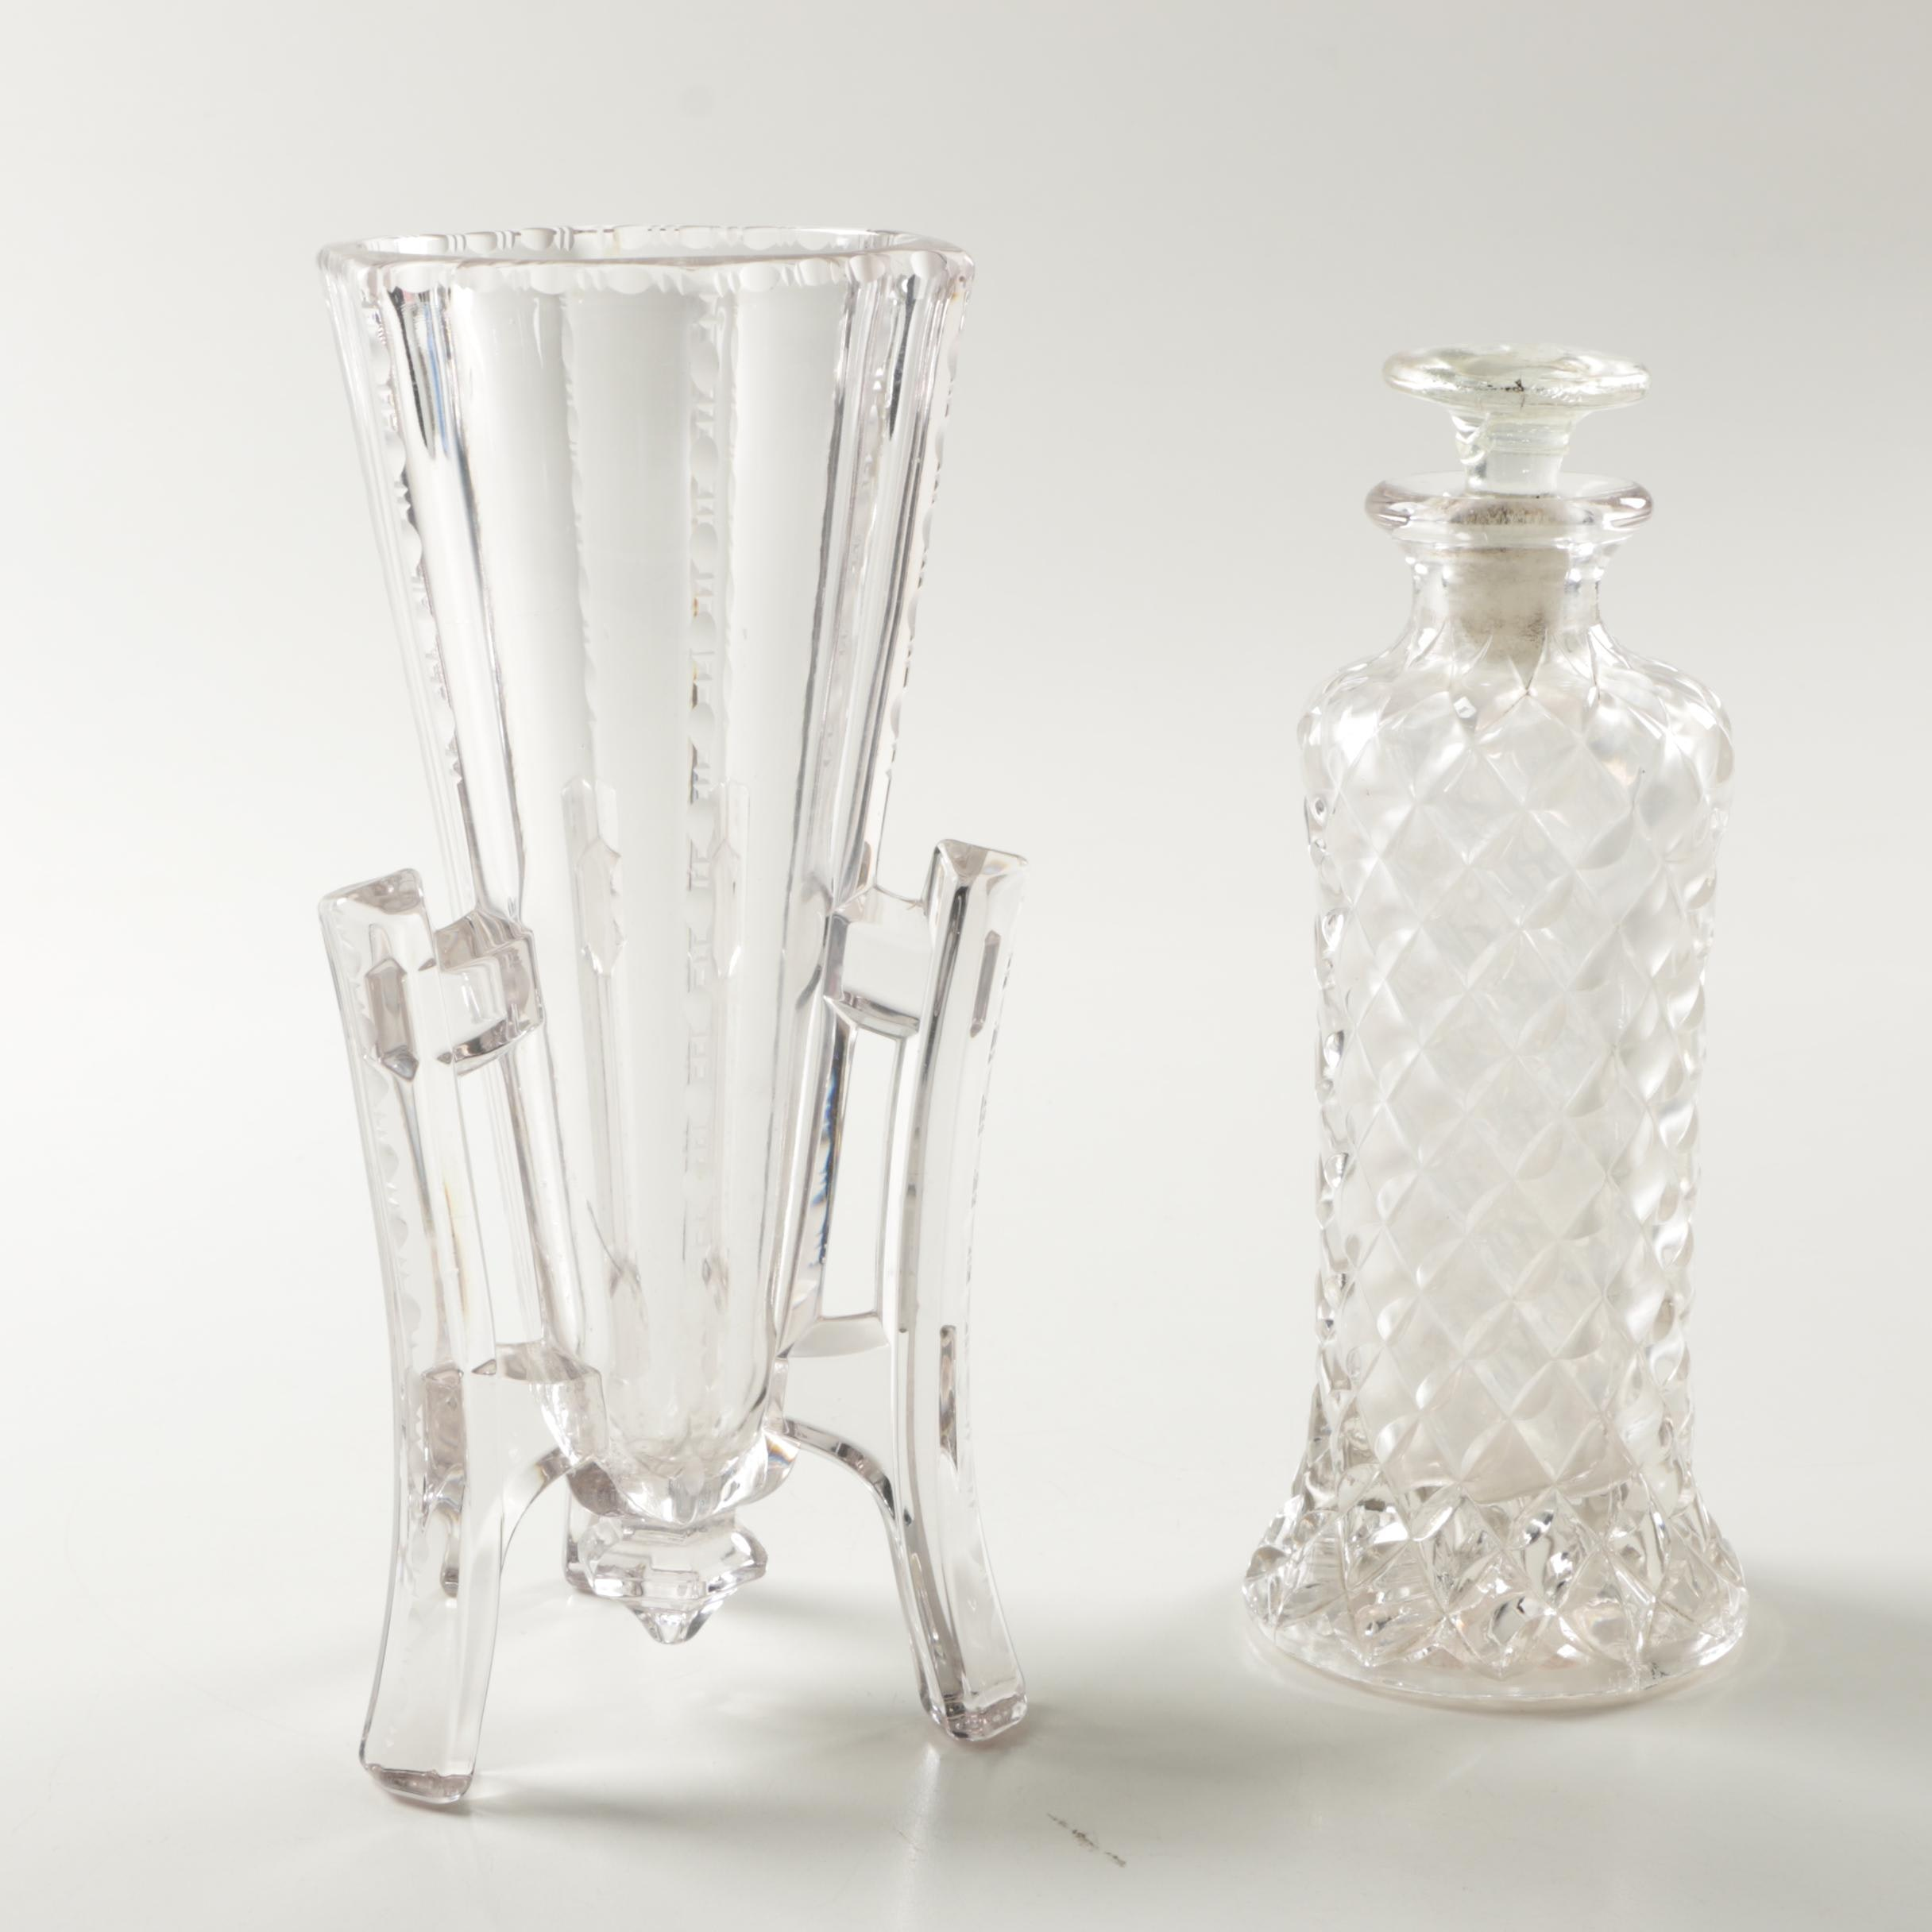 Antique Cut Crystal Vase and Pressed Decanter